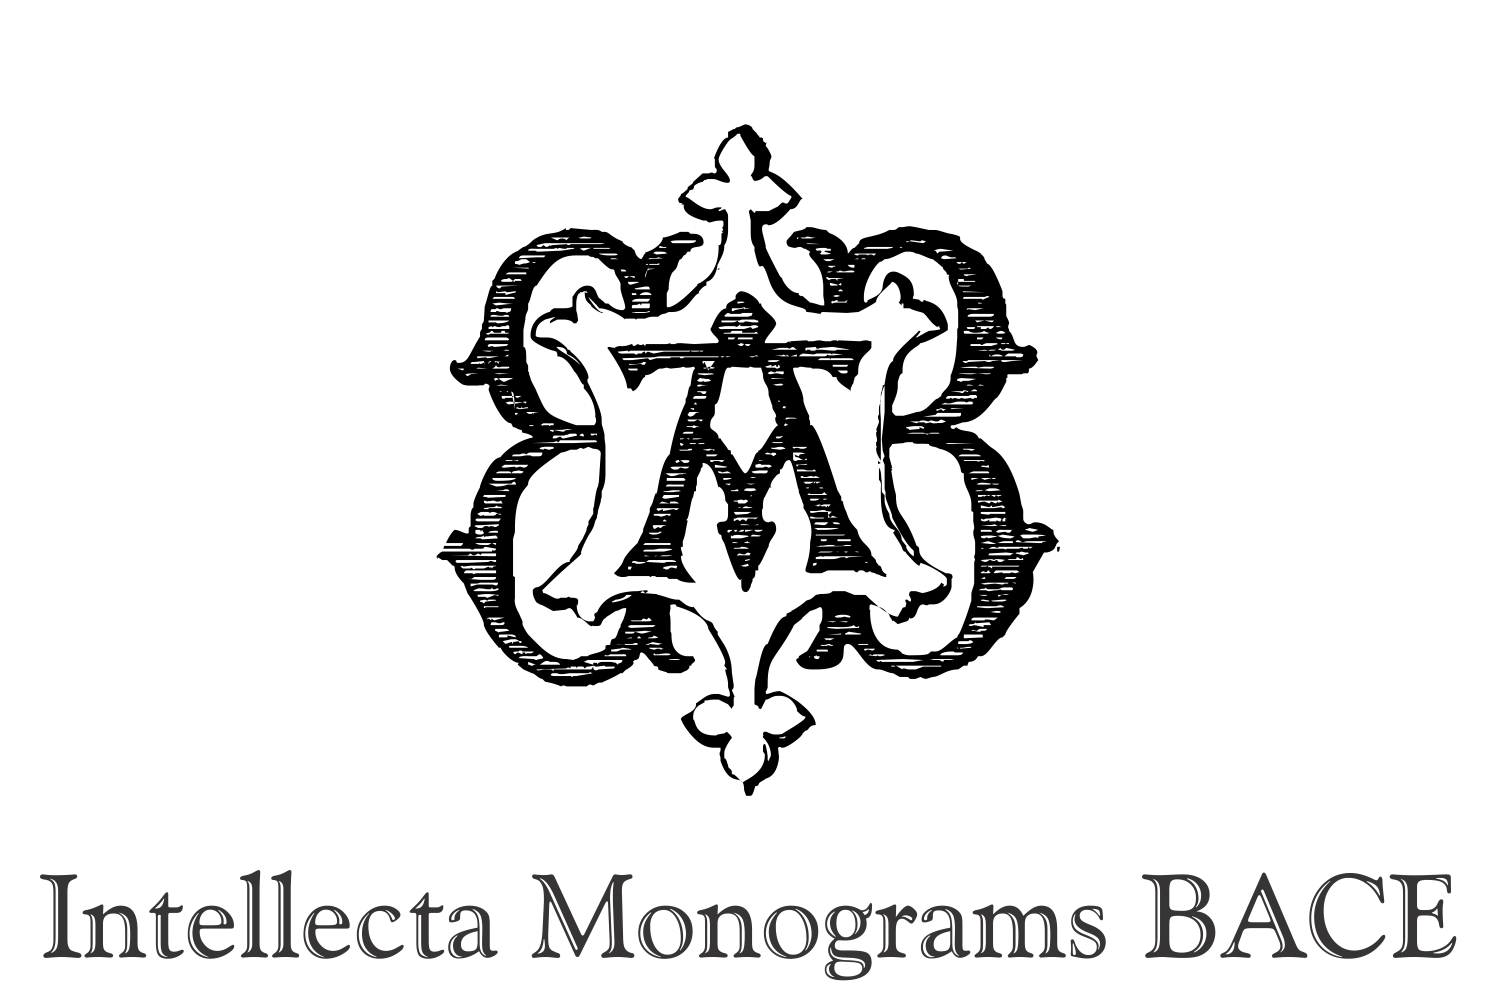 Intellecta Monograms BACE example image 1